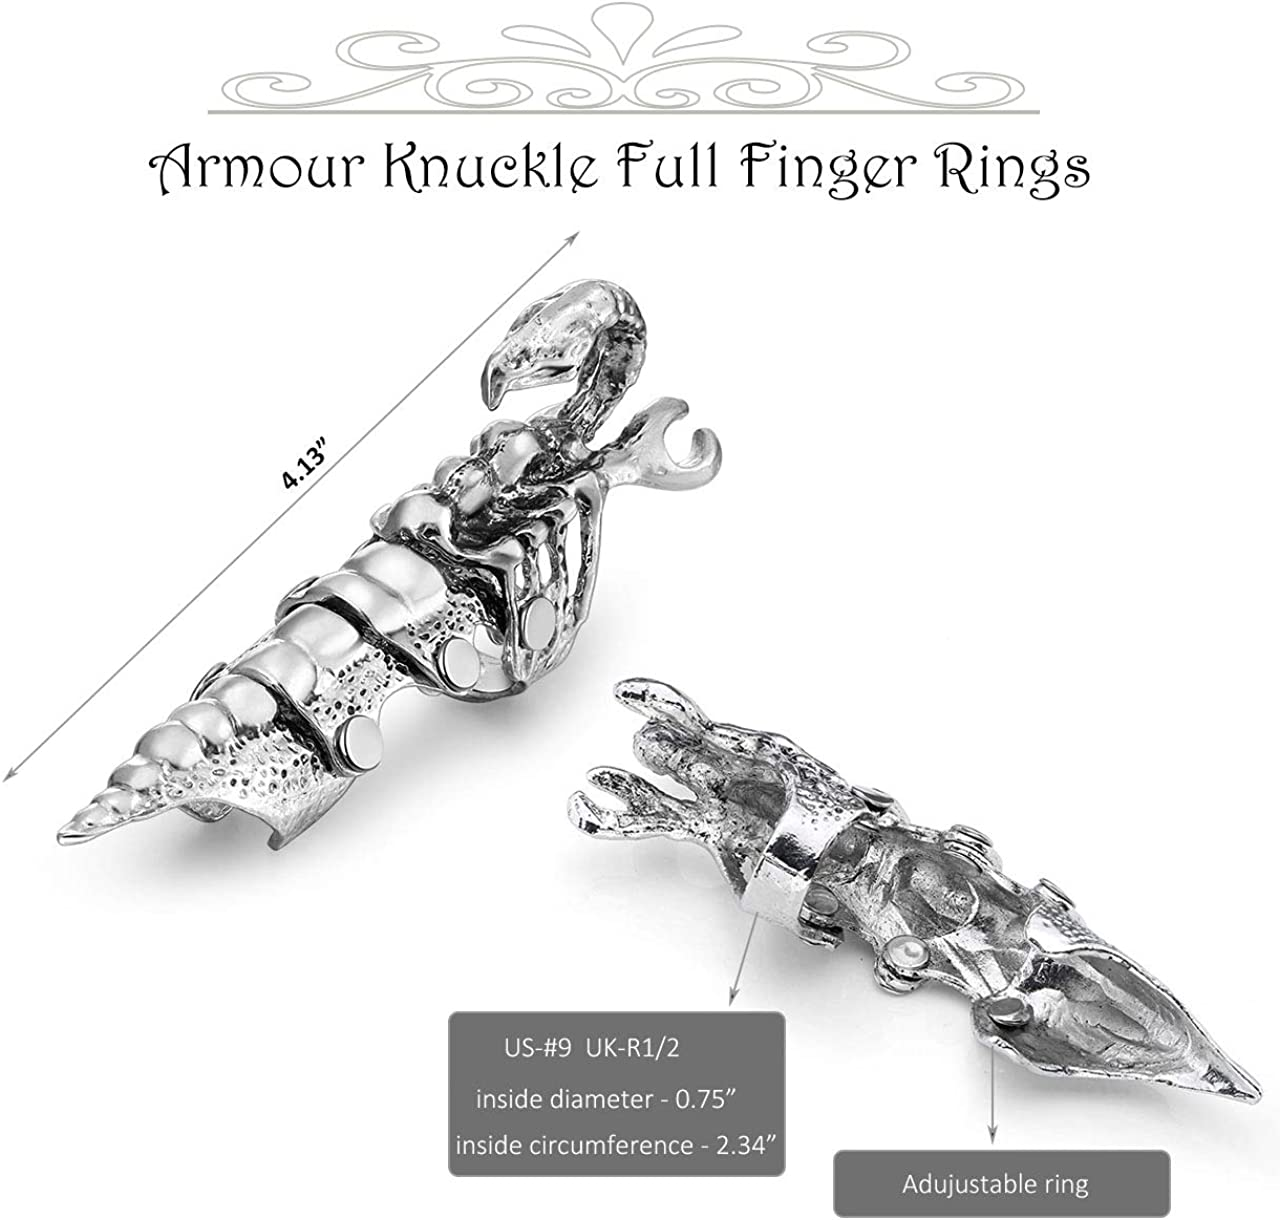 PiercingJ Mens Knuckle Joint Full Finger Double Ring Punk Rock Gothic Hinged Activity Rings Halloween Cosplay Costume Accessories Jewelry